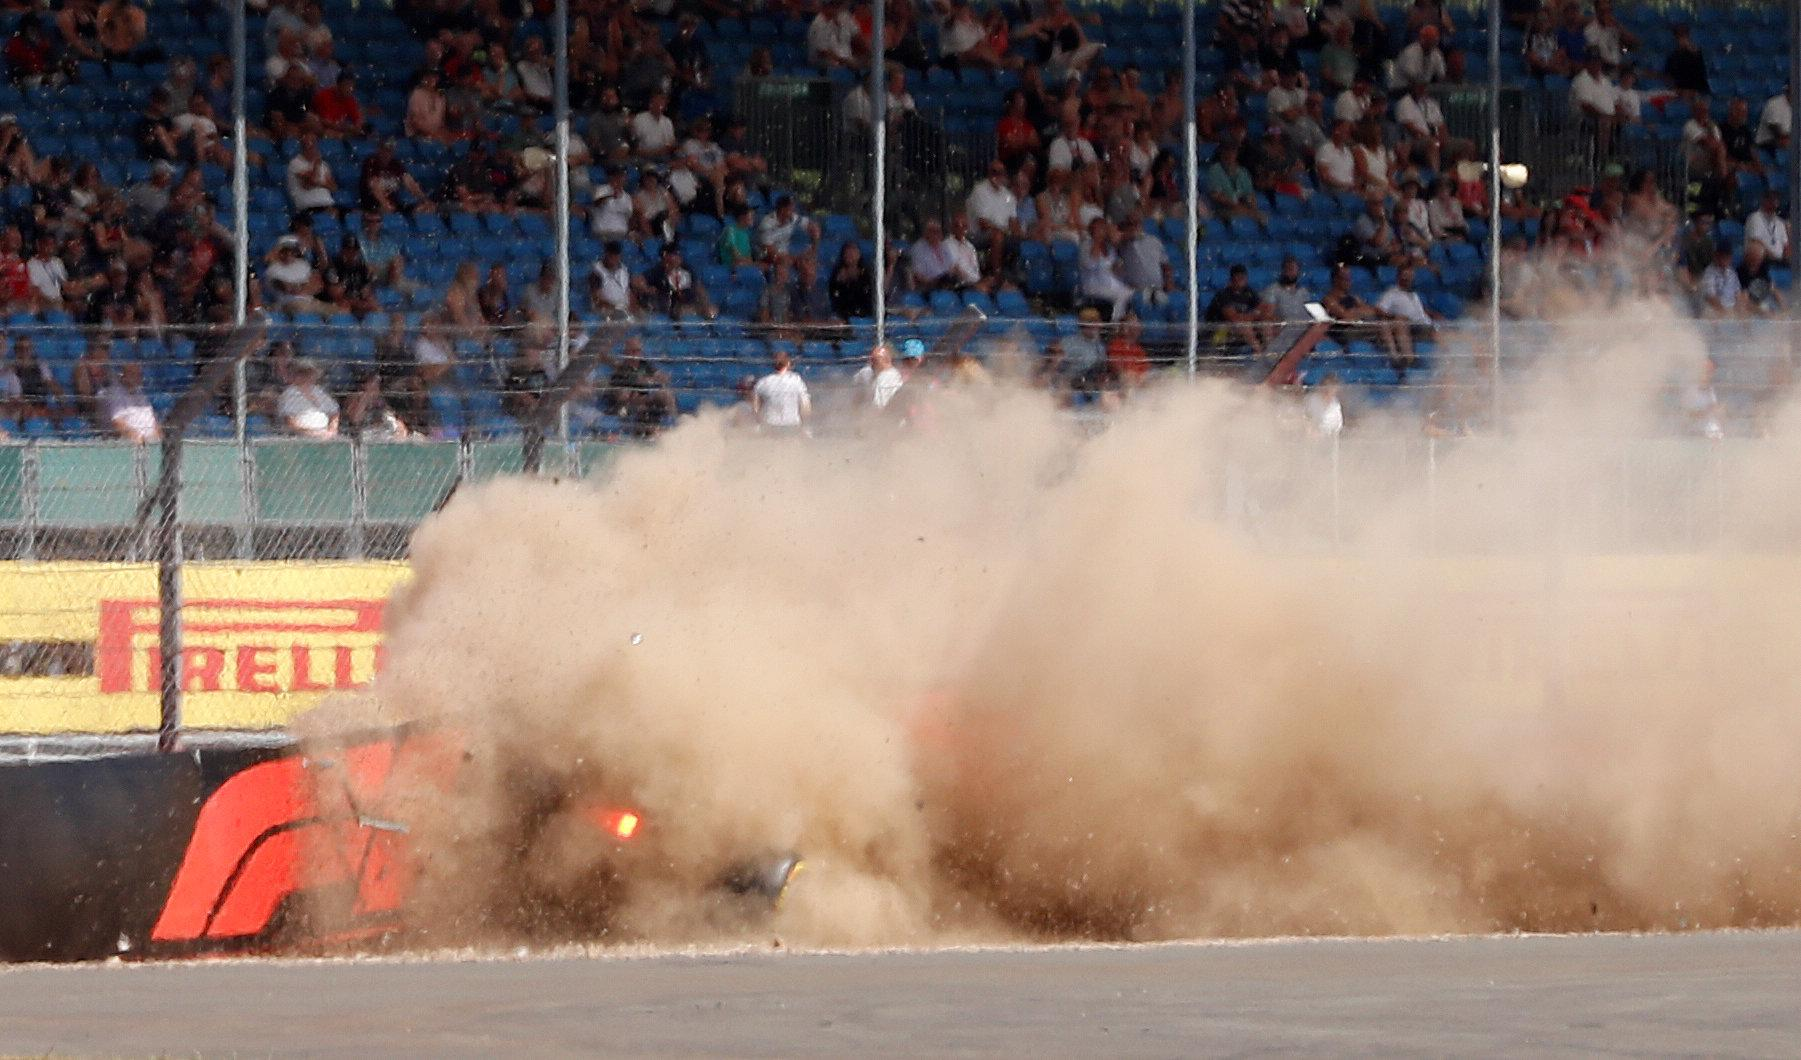 A huge cloud of smoke and dust emerged after the crash